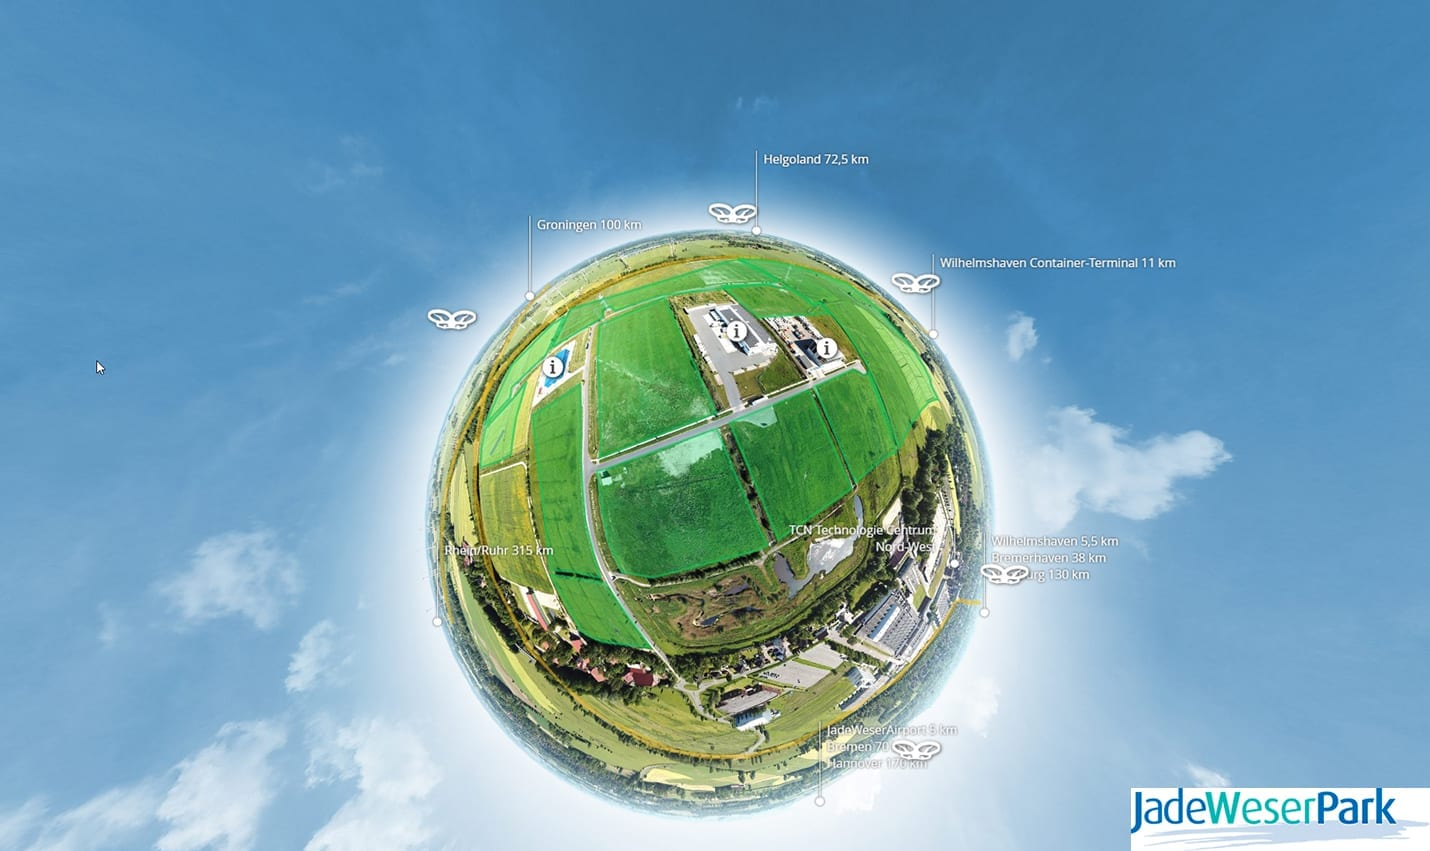 Jade-Weser Park Virtuelle Tour Tiny Planet 360 Werbeagentur